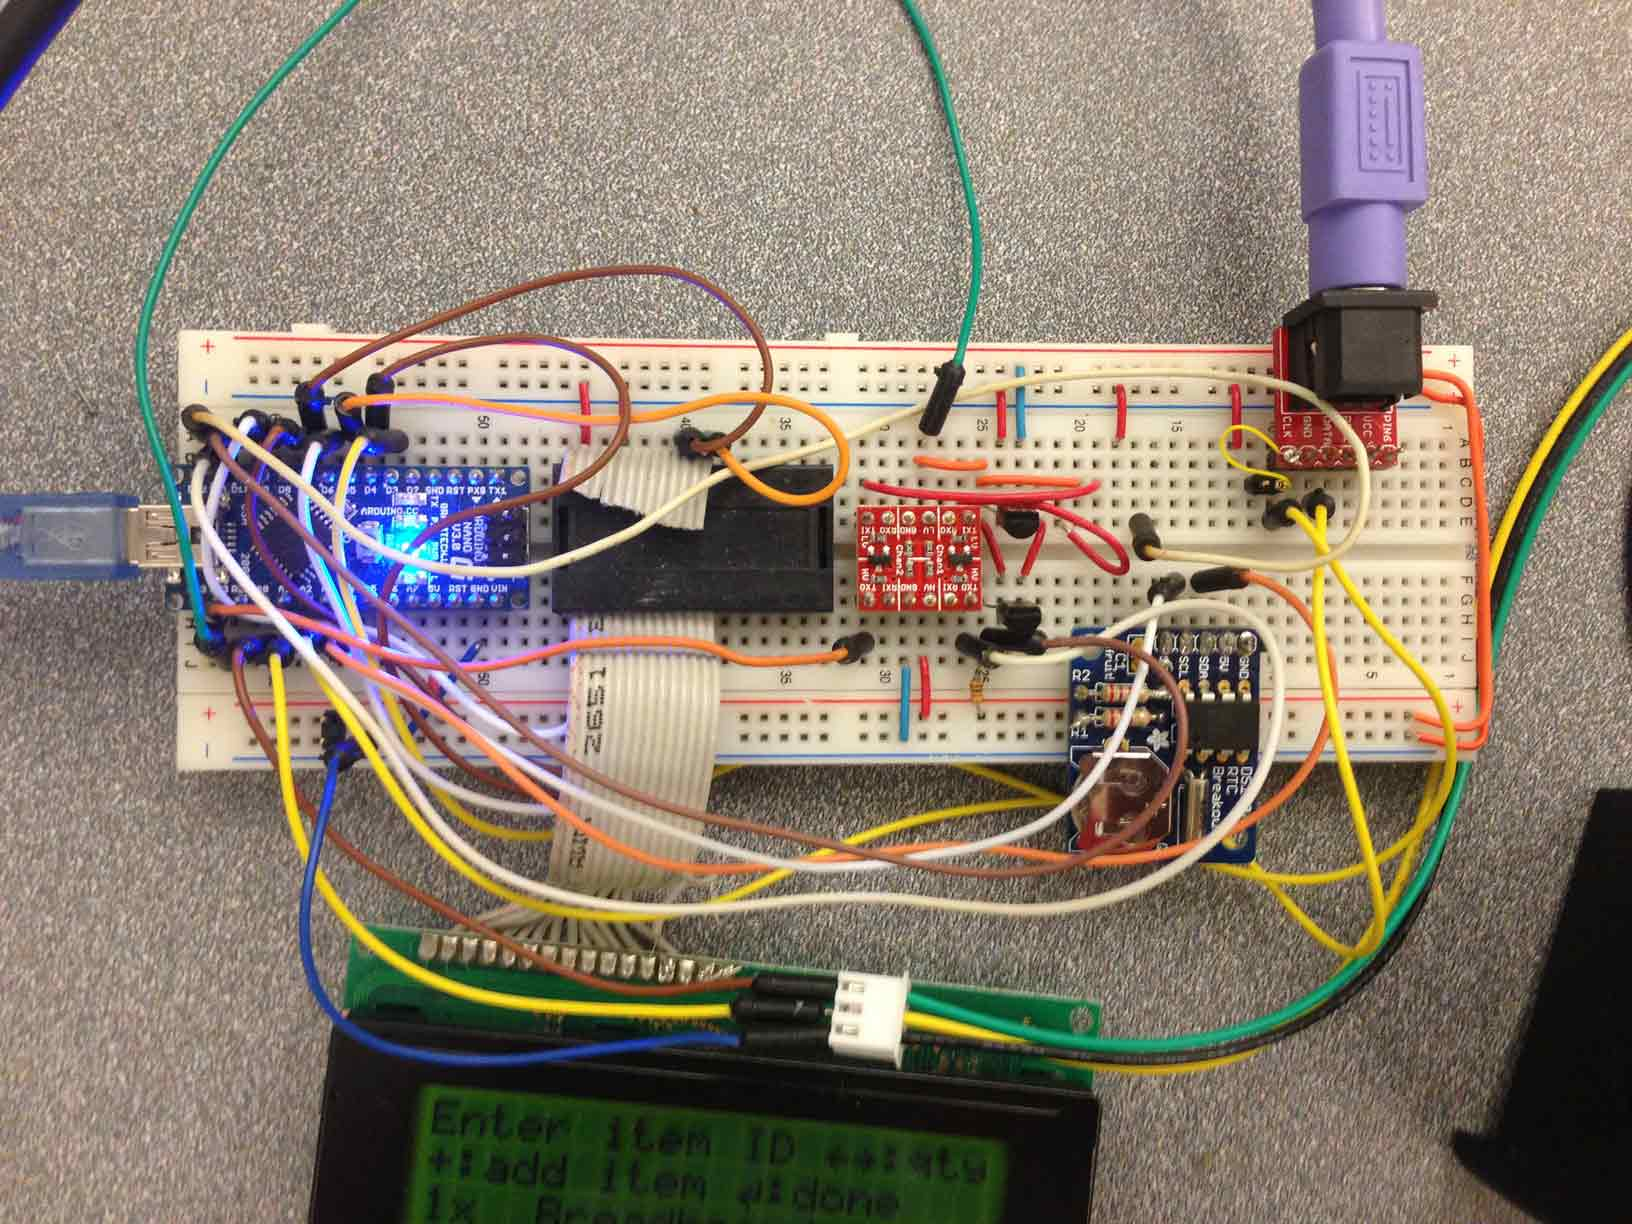 hight resolution of arduino based point of sales system speedy signals model railway point of sale wiring